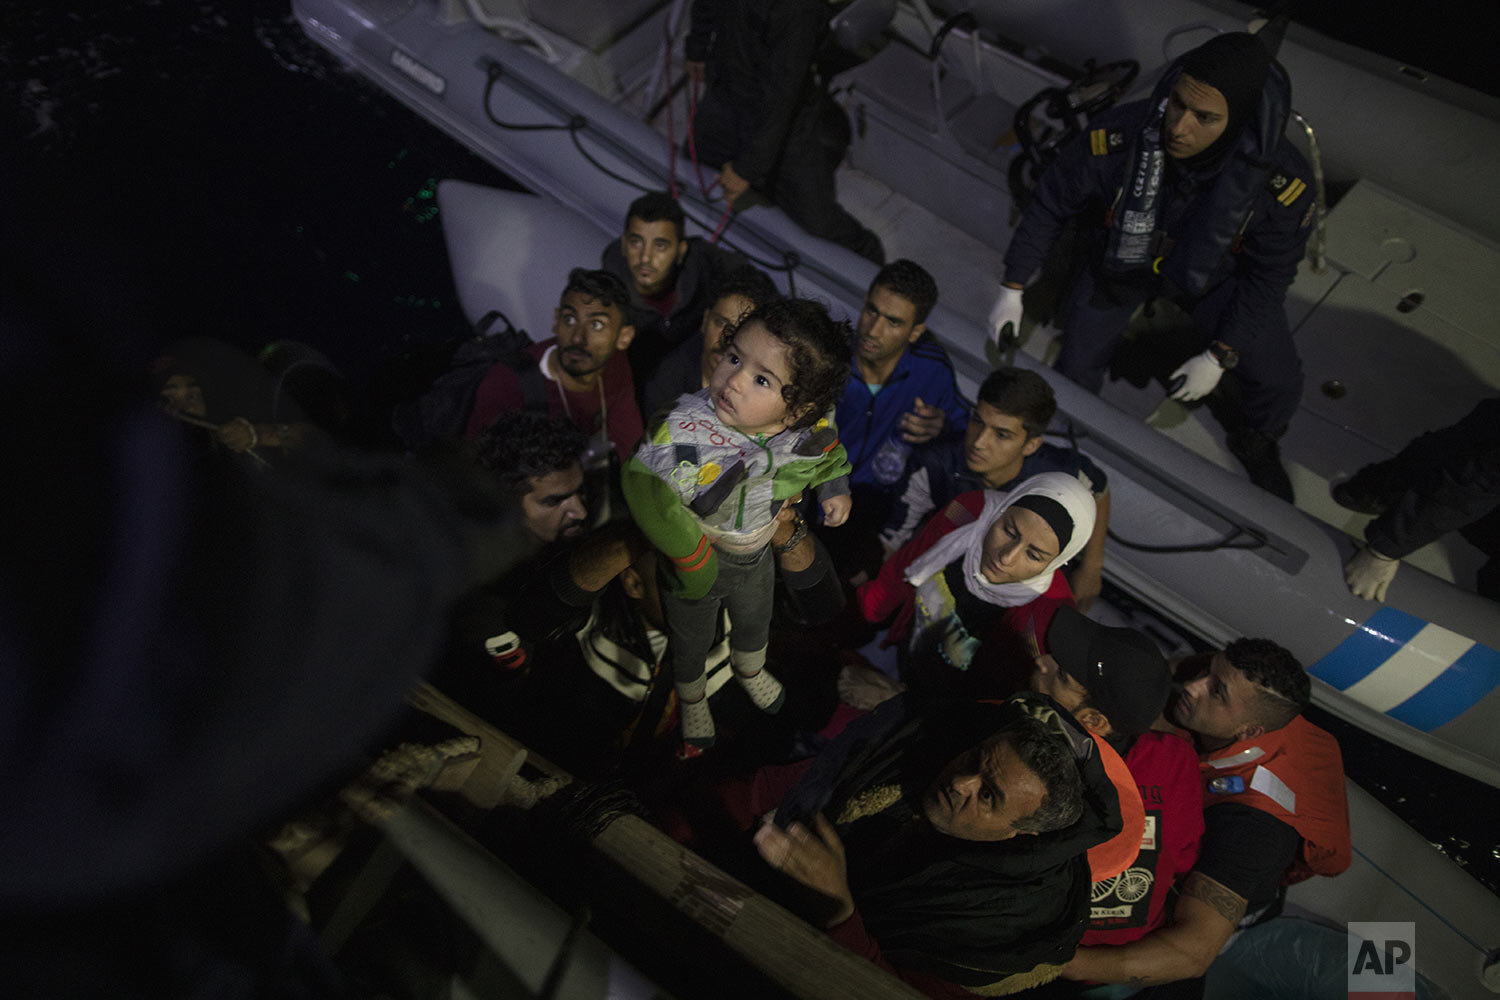 Refugees and migrants are transferred from their dinghy onto a Greek coast guard patrol boat during a rescue operation near the eastern Aegean Sea island of Samos, early Thursday, Sept. 26, 2019. (AP Photo/Petros Giannakouris)